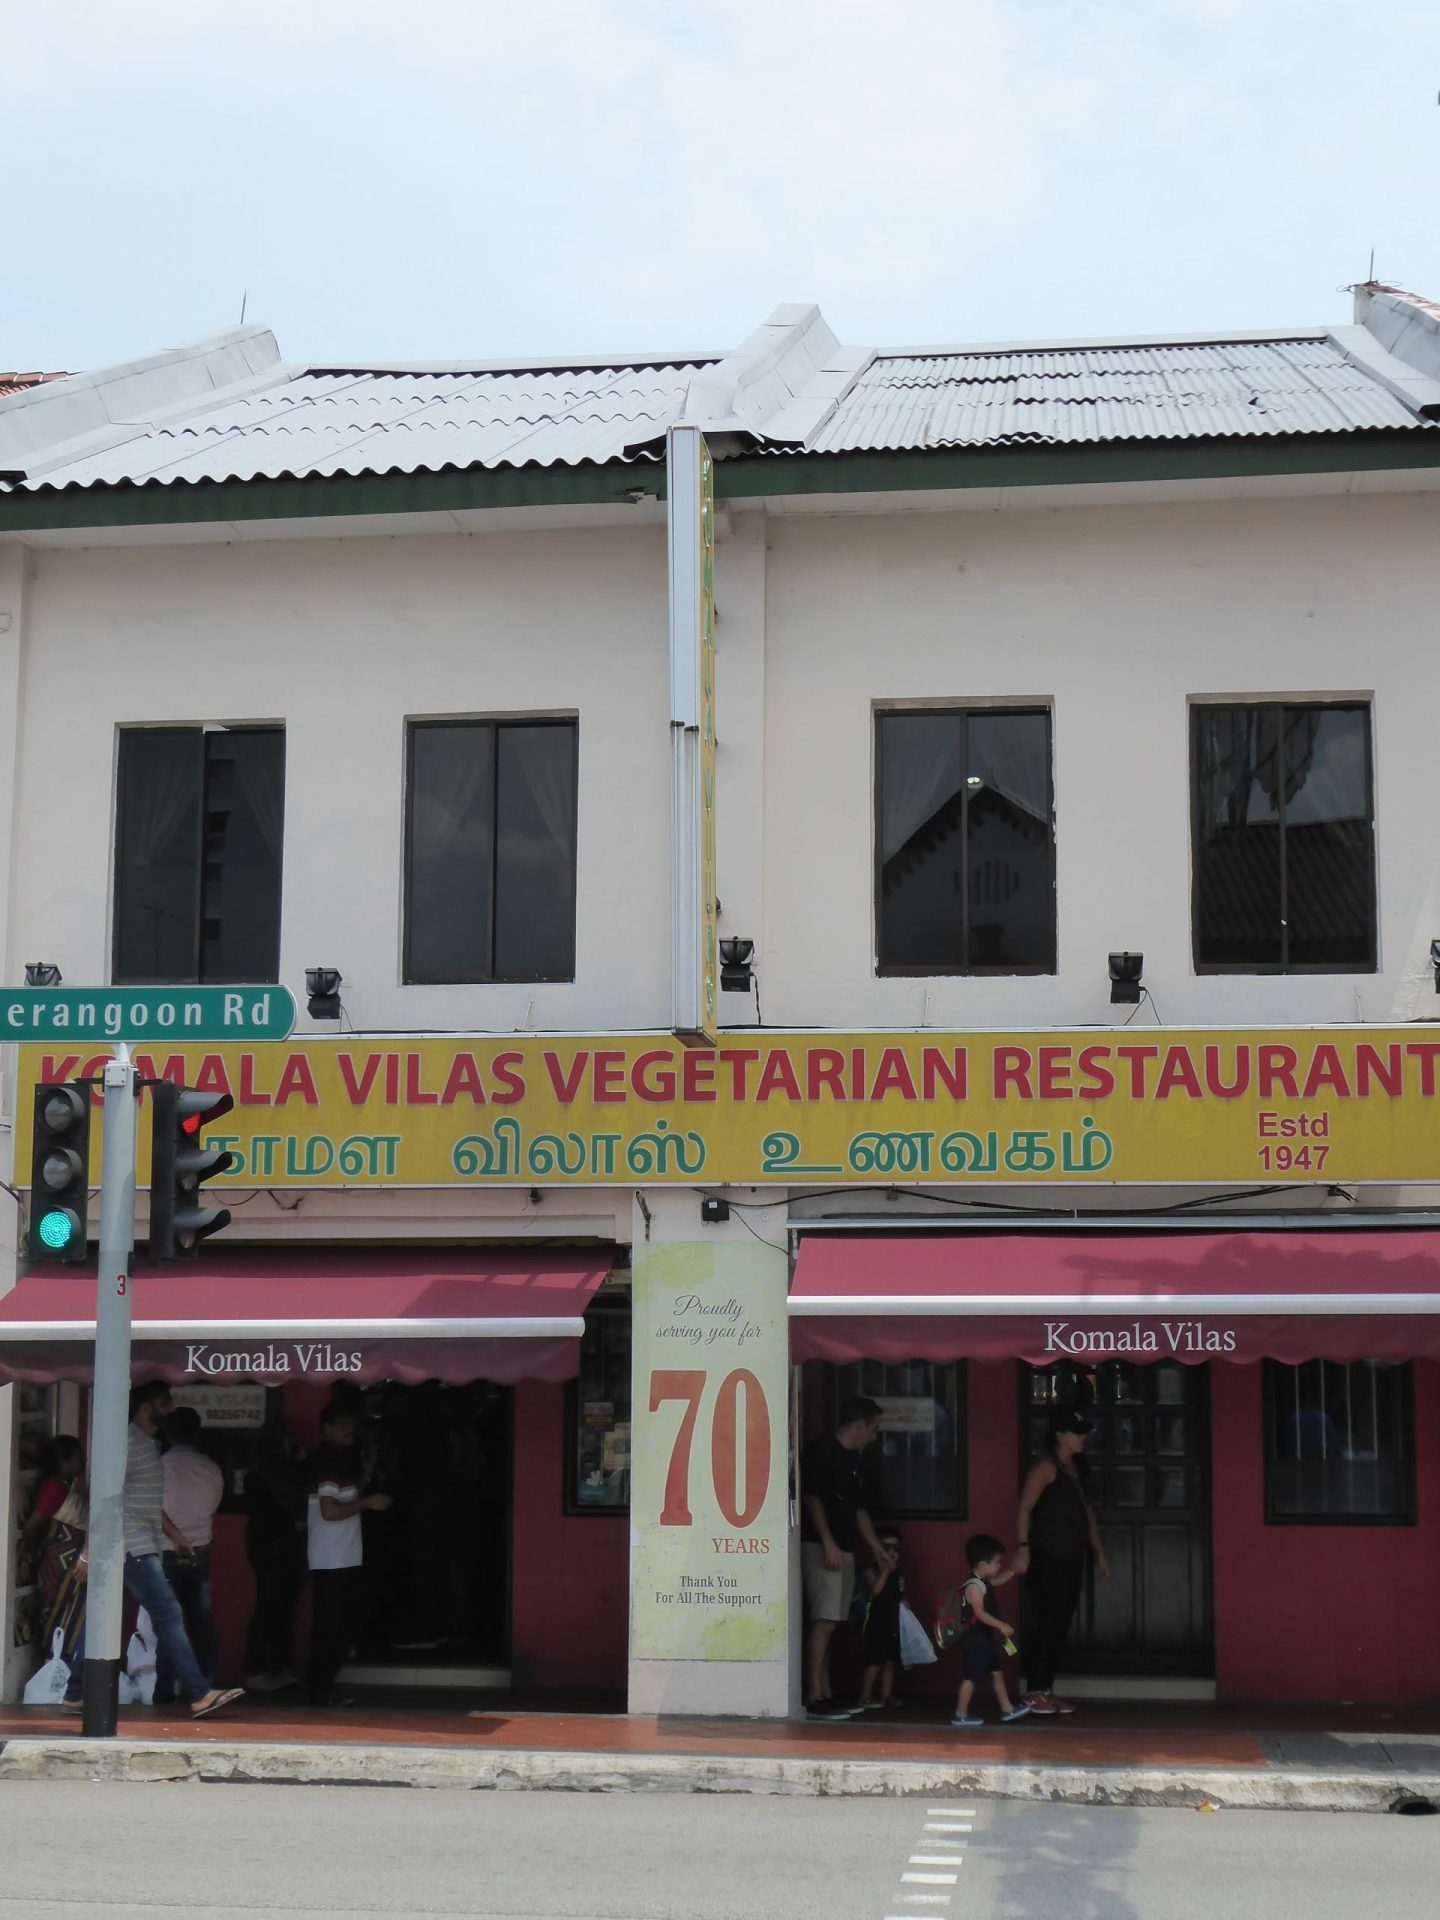 A photo the outside of Komala Vilas on Serangoon Road in Singapore. A yellow sign stretcher along above the restaurants identifying it in English and Tamil.